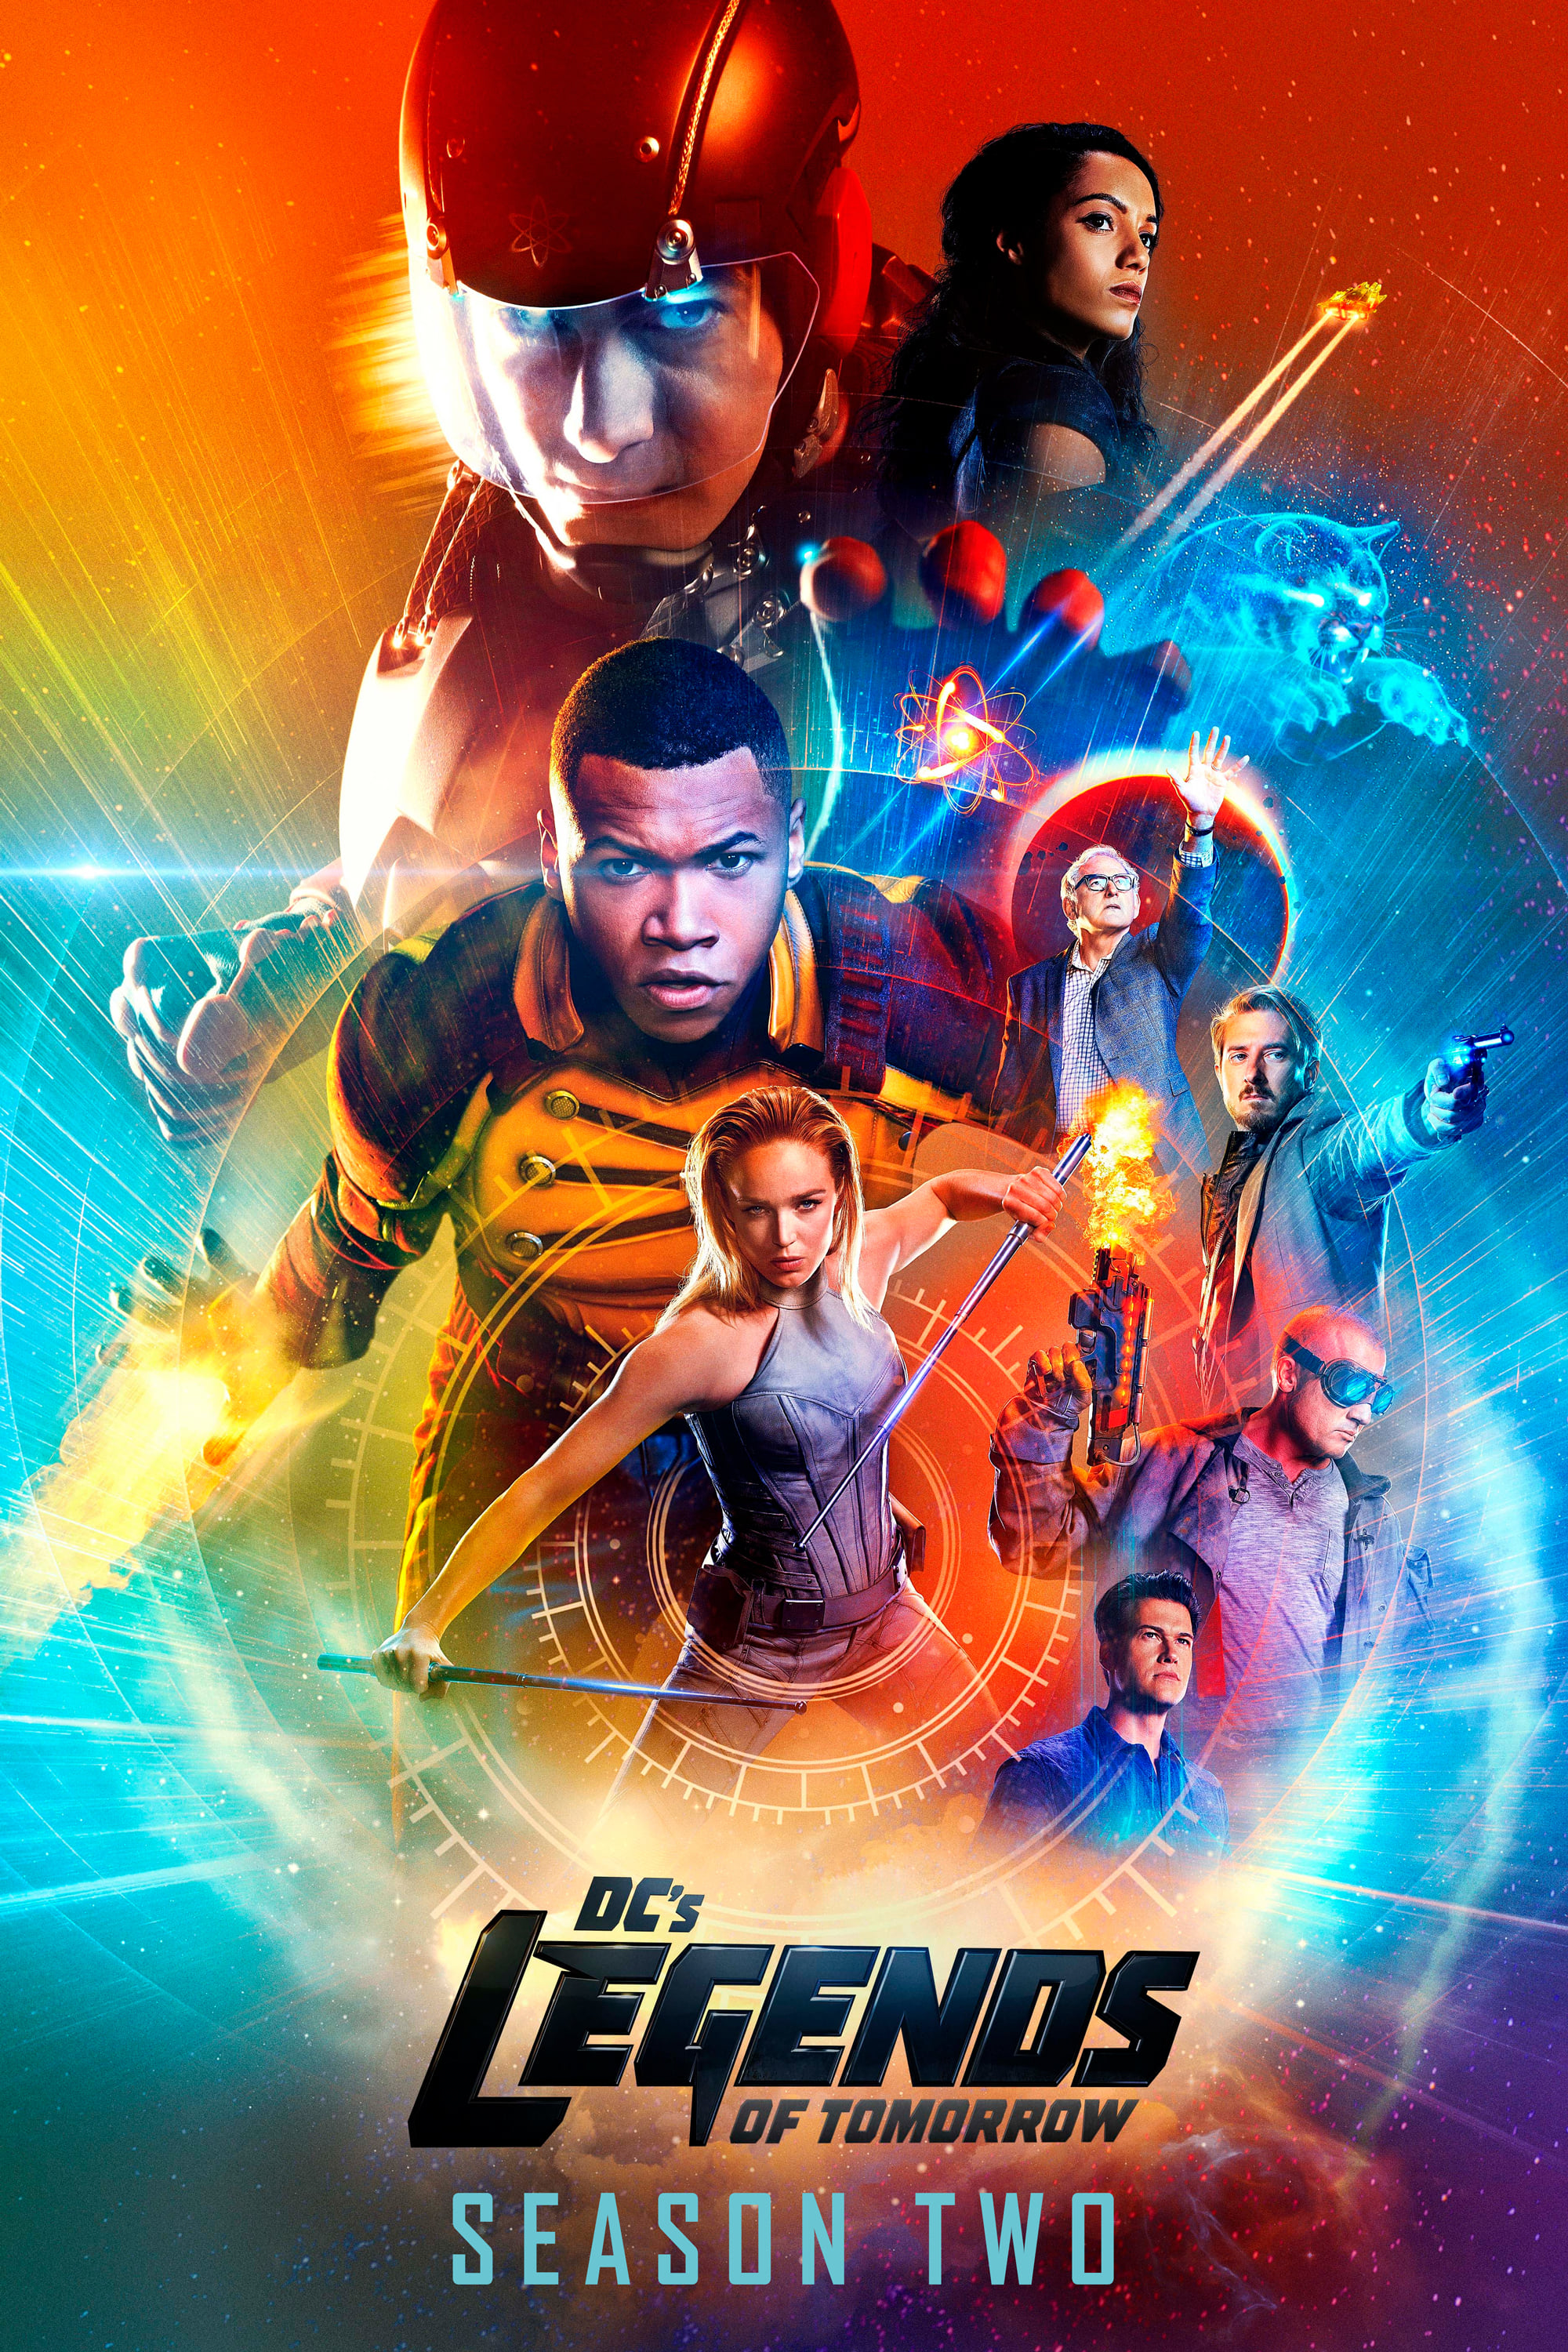 Legends of Tomorrow Season 2